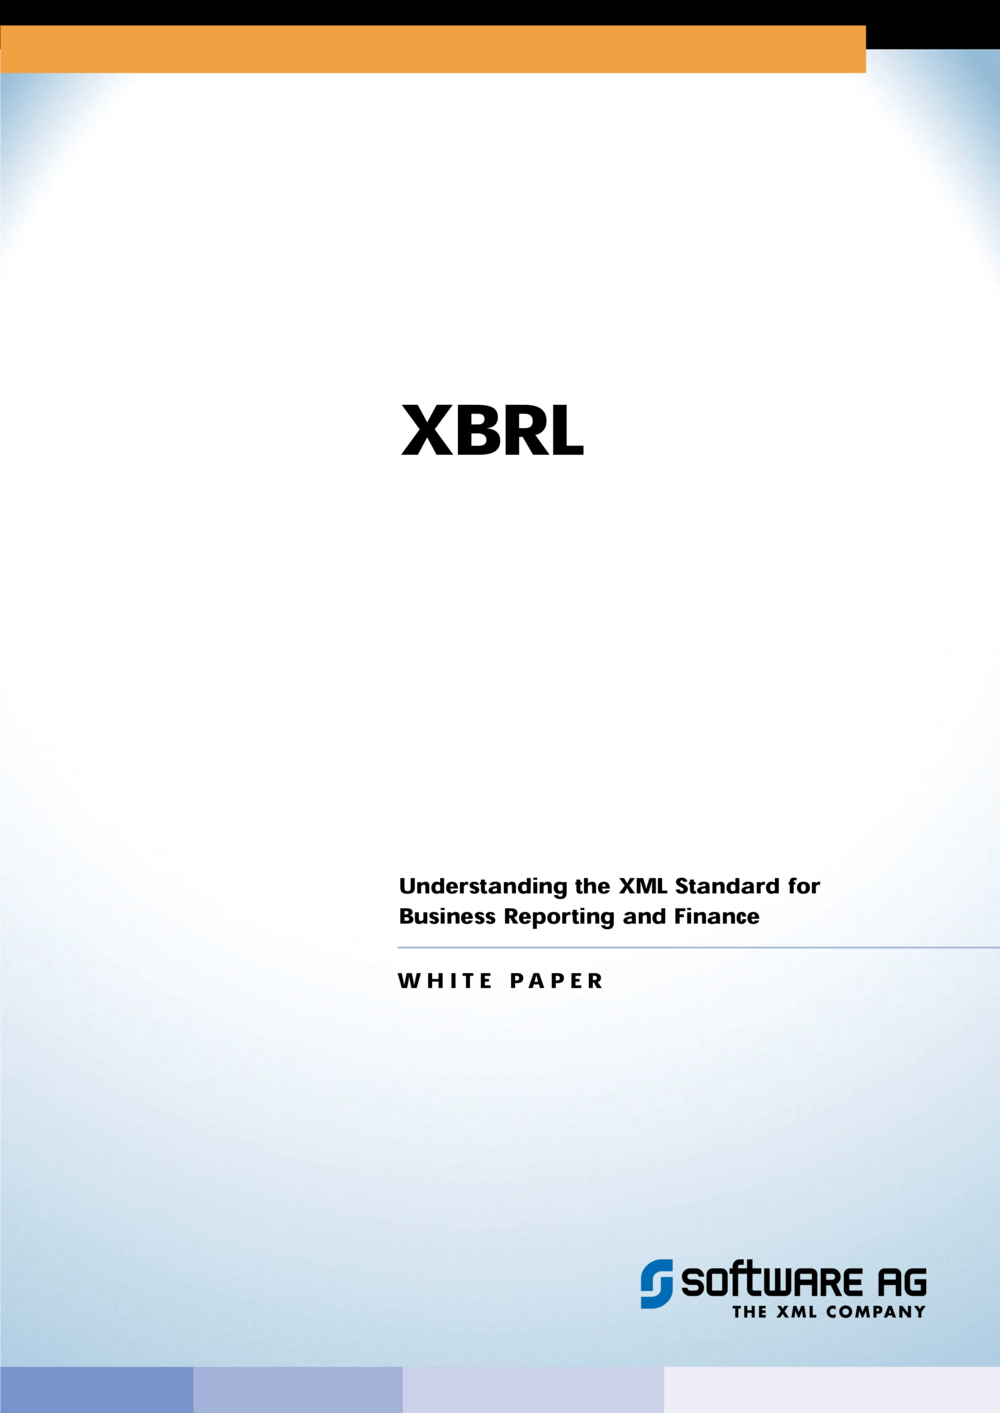 Software_AG_XBRL_White_Paper-1.png